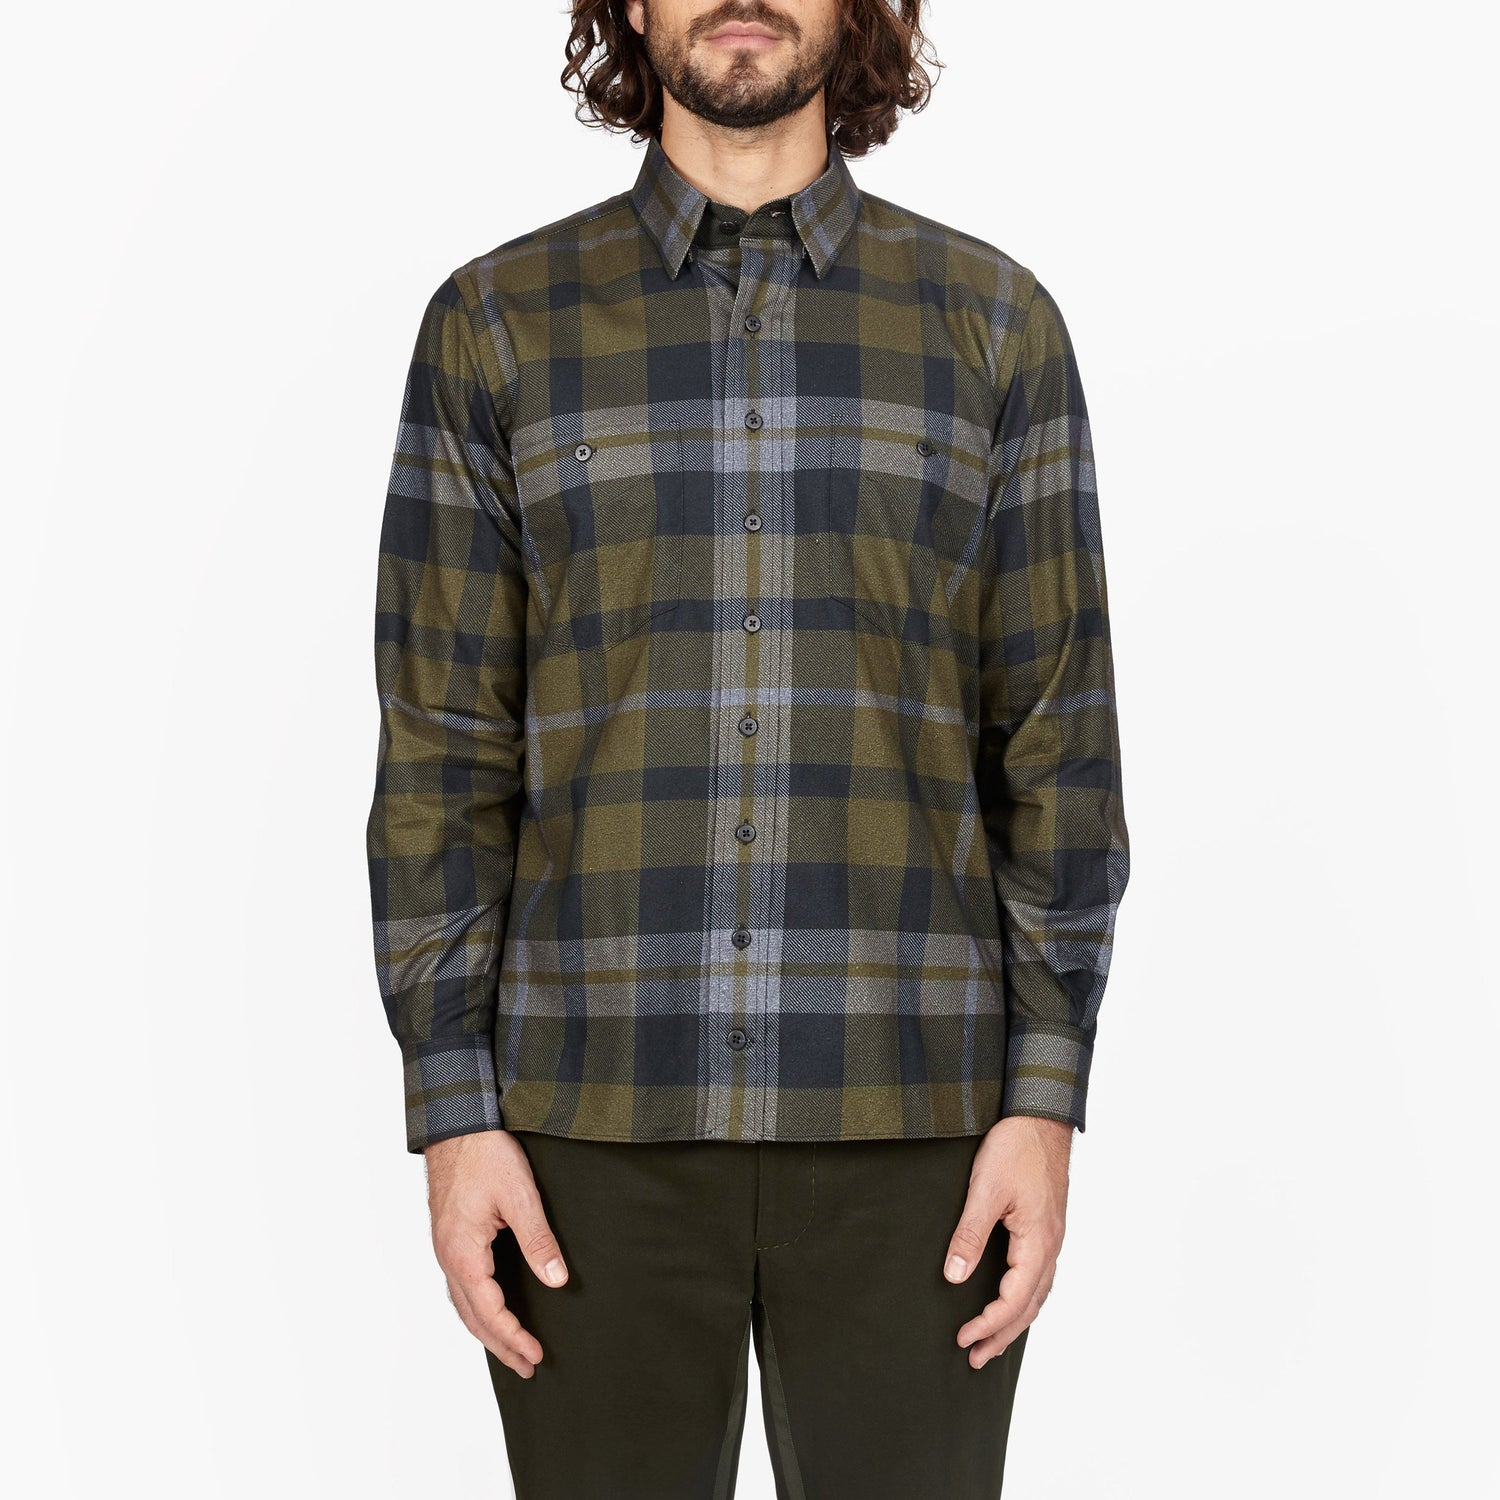 The Fort Flannel Plaid Shirt